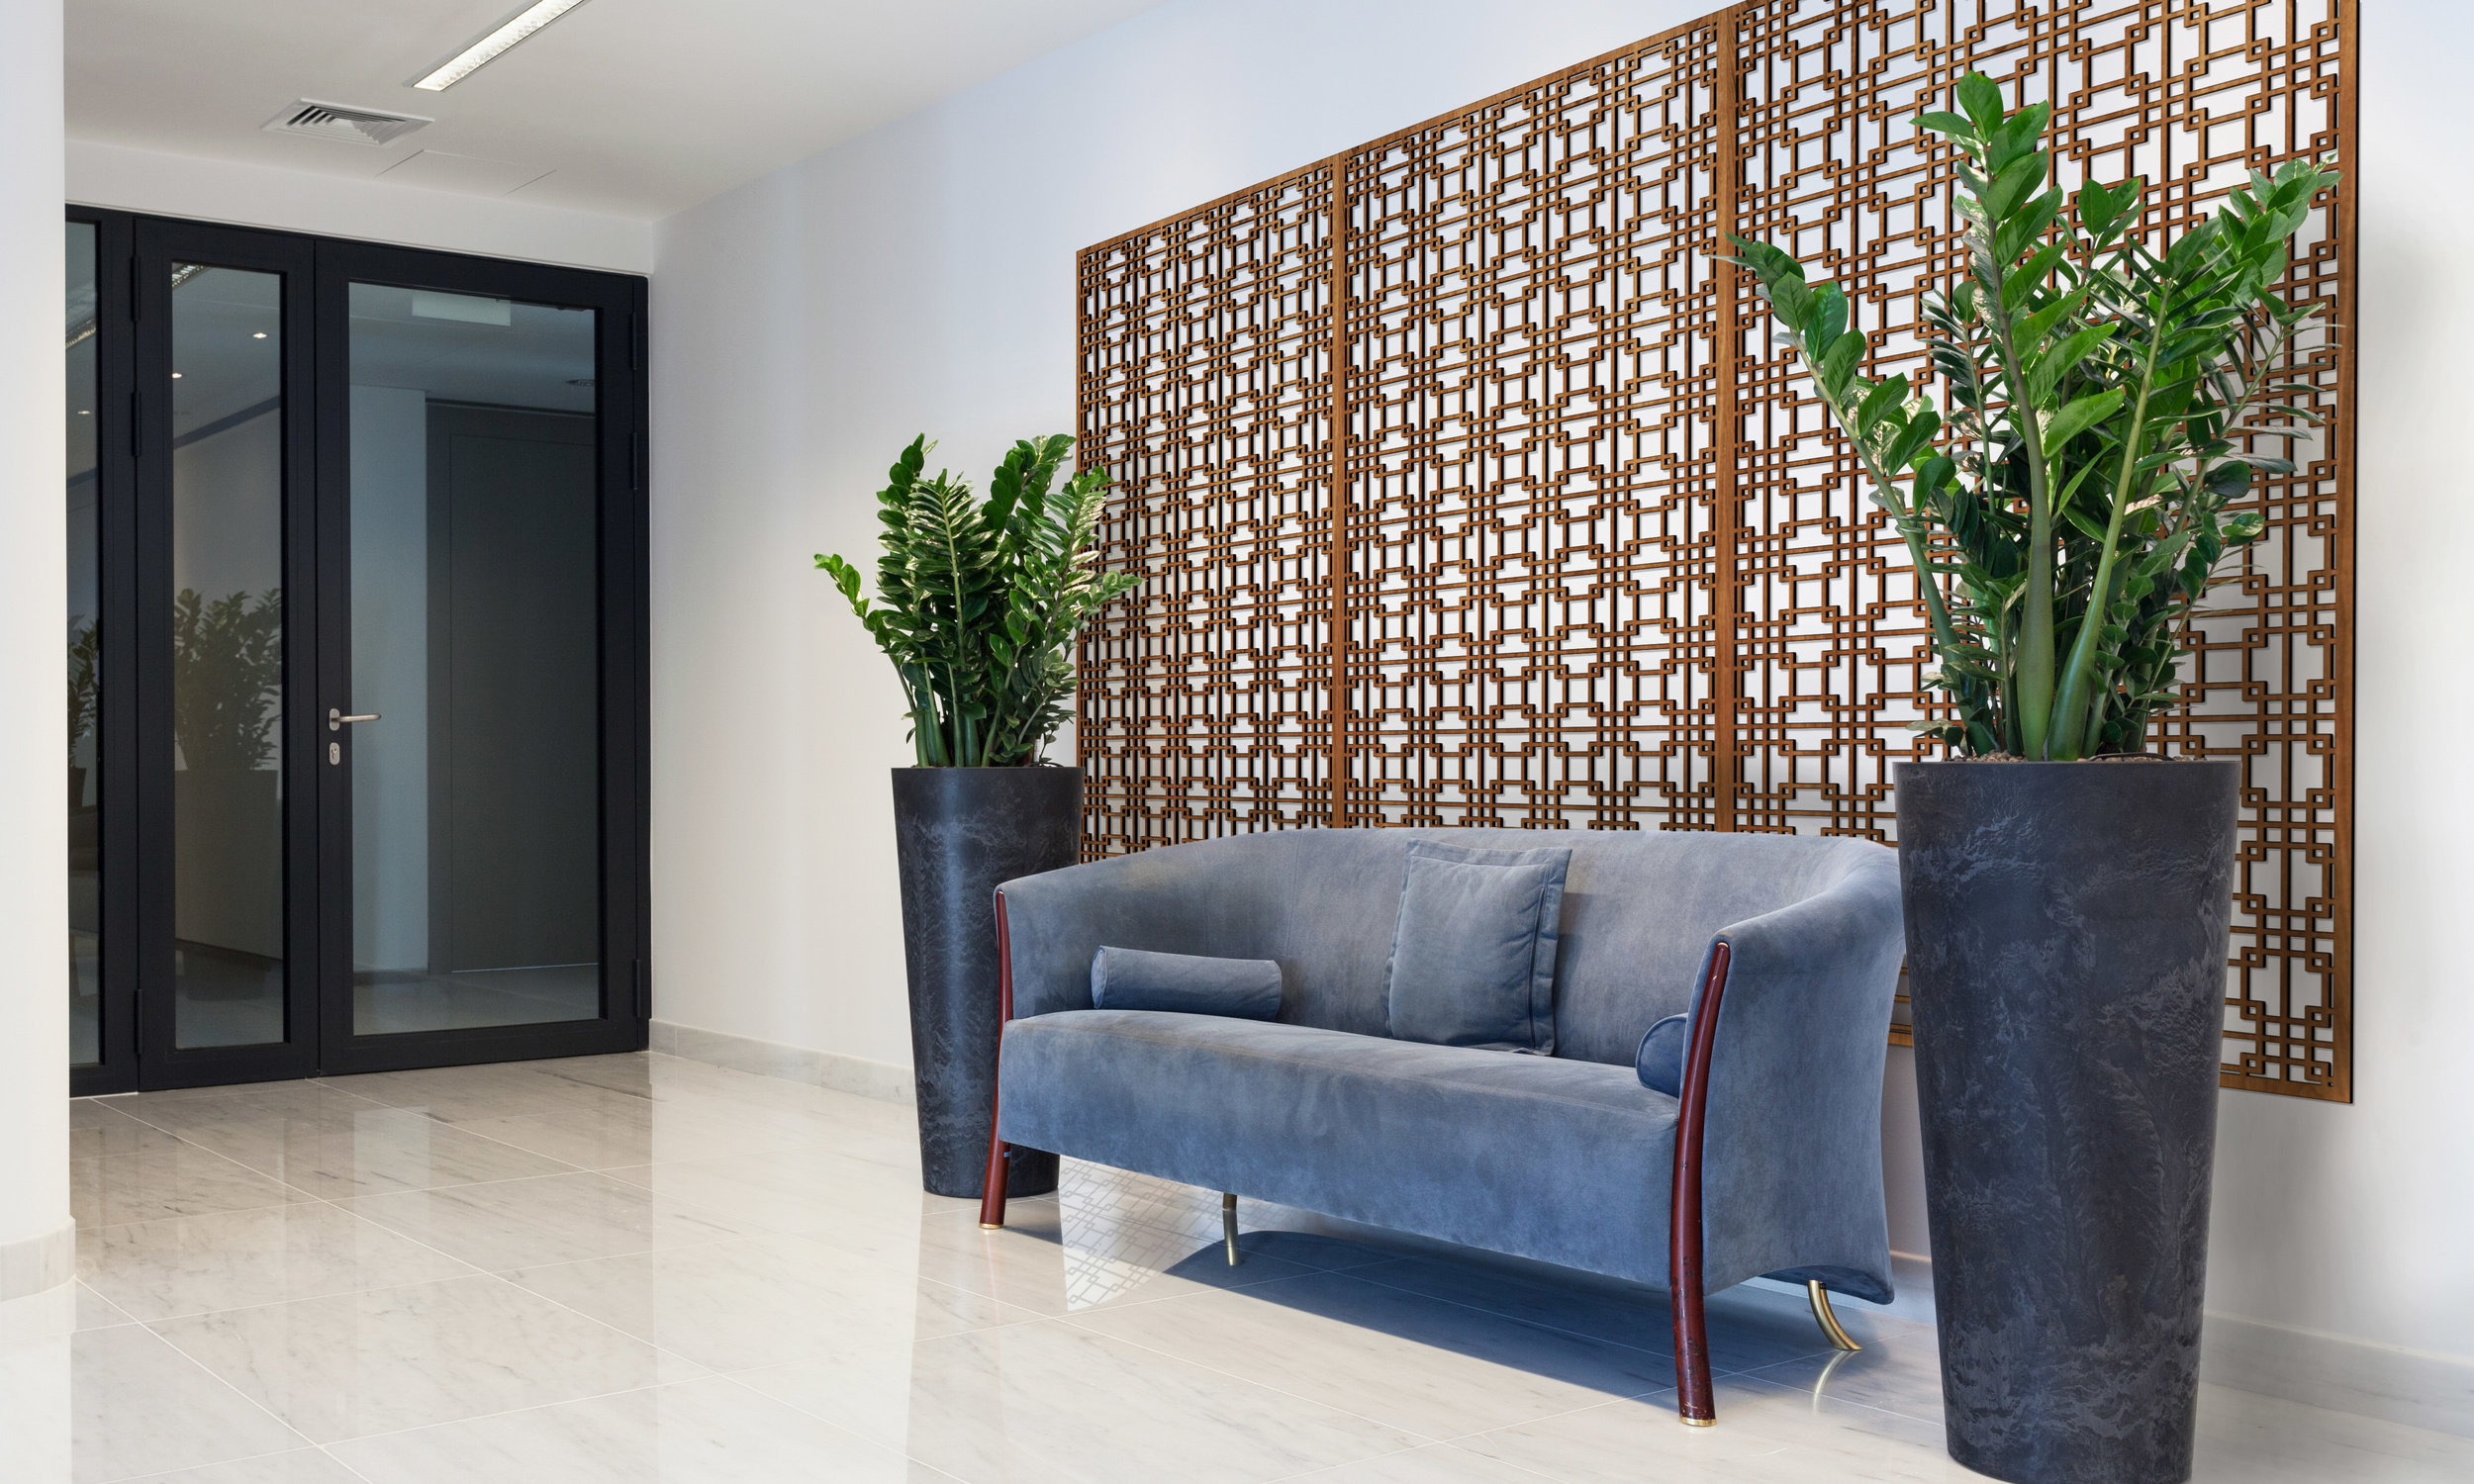 Installation Rendering A   Tokyo Grille decorative office wall panel - shown in Cherry